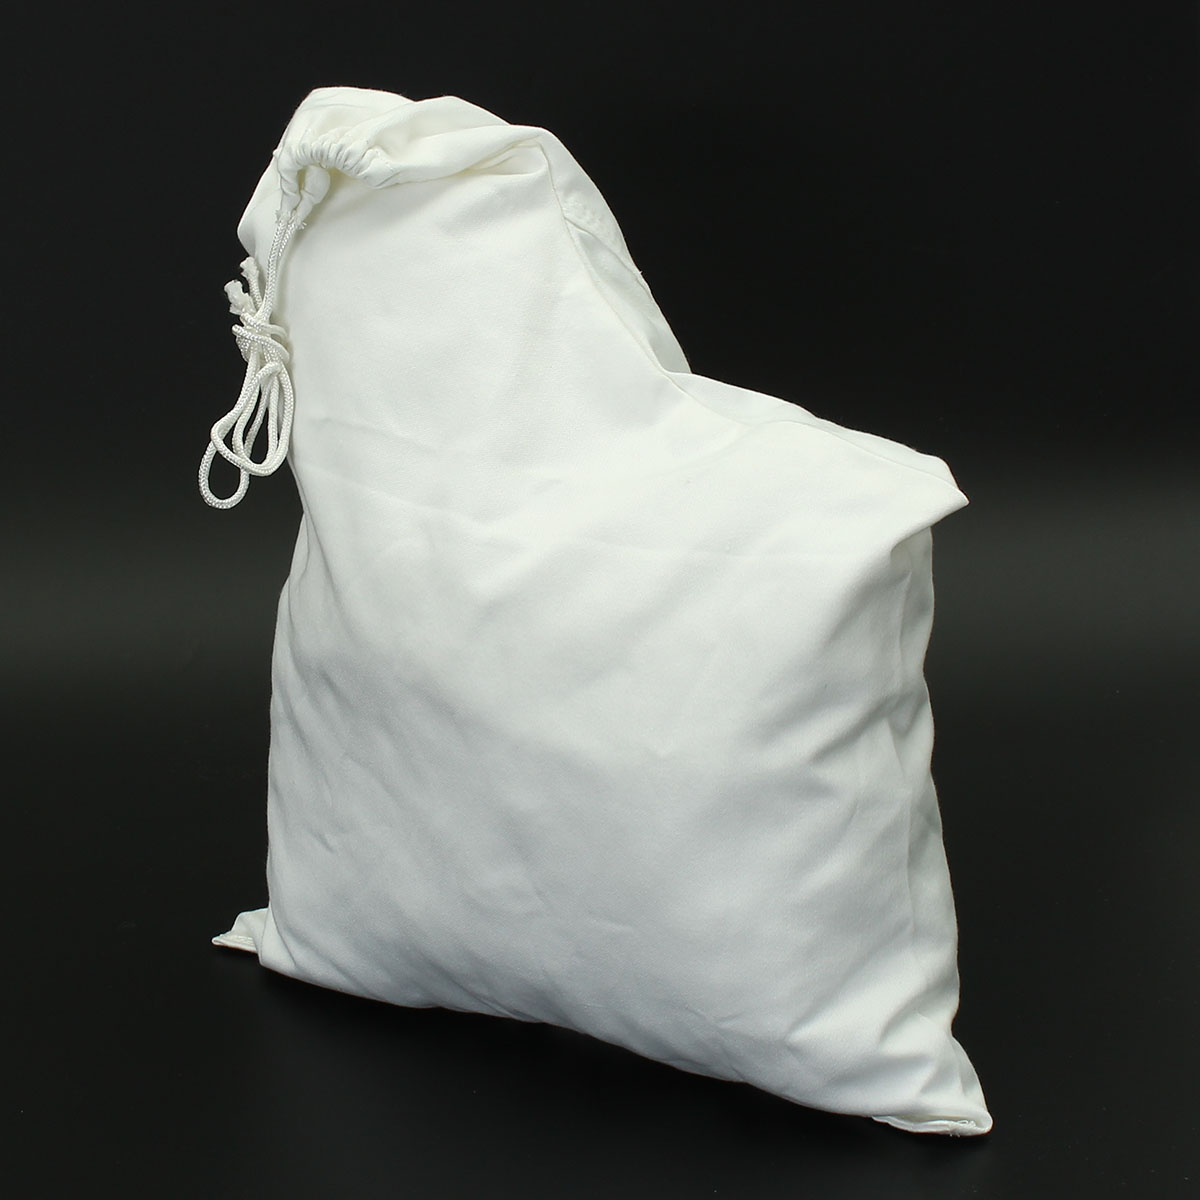 Polyester 729 White Leaf Blower Vac Bag Sack Replacement Vacuum Bag for Model 2595